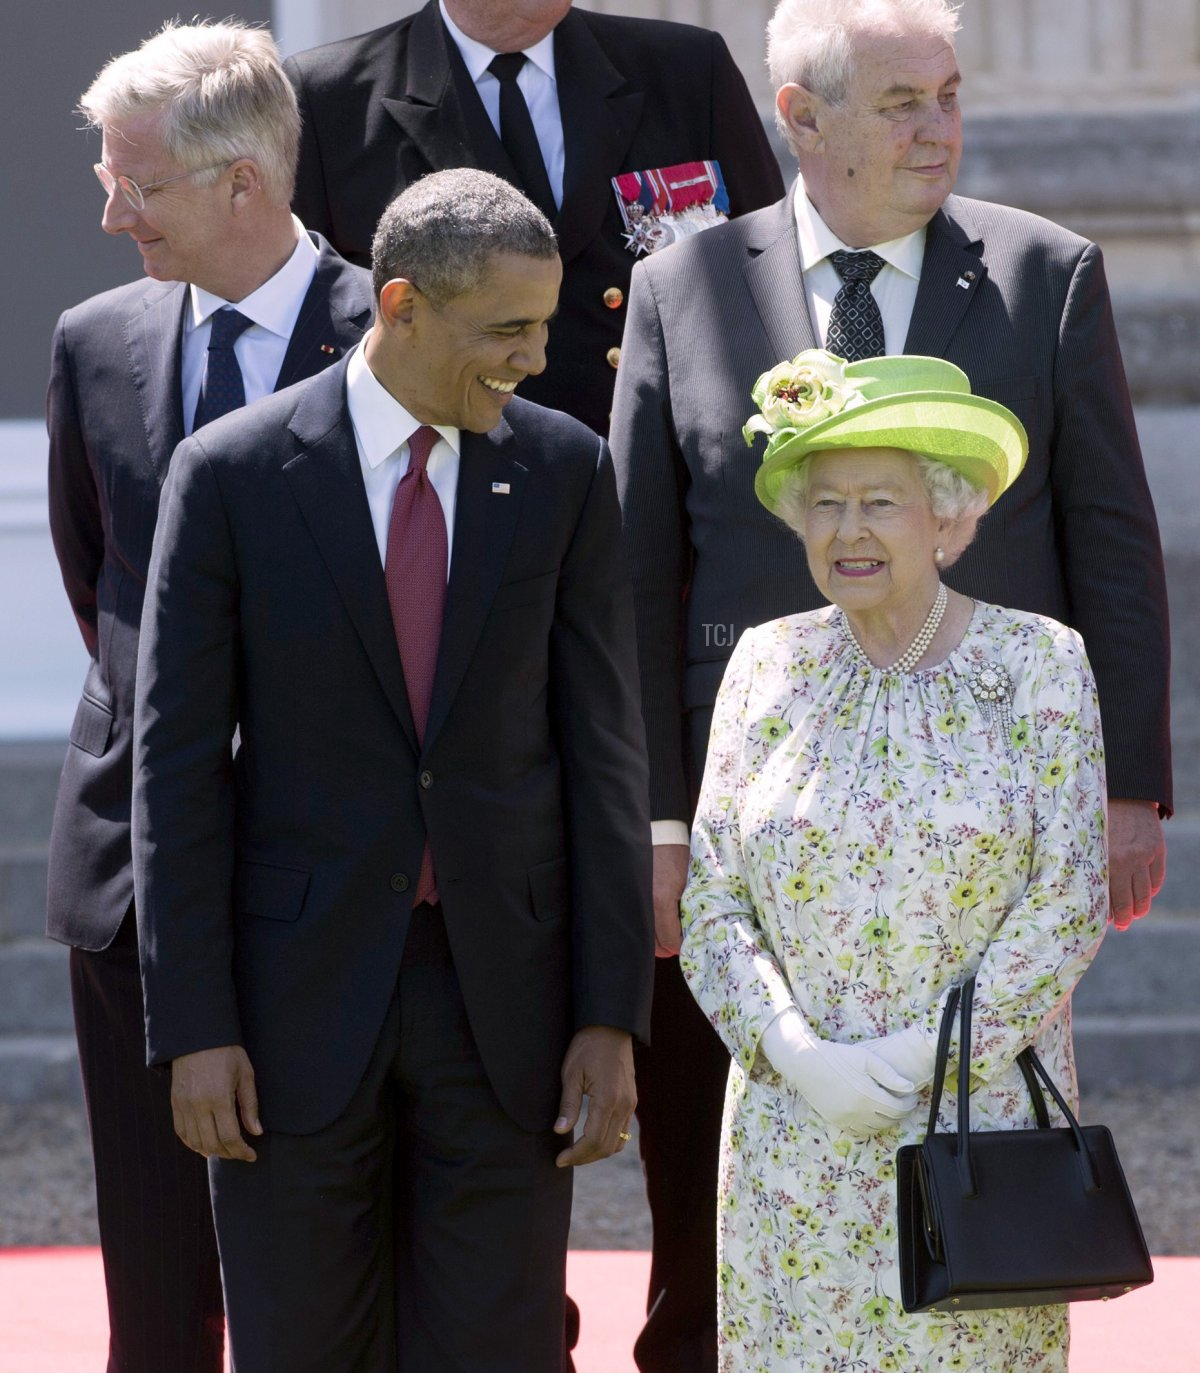 Queen Elizabeth II speaks with US President Barack Obama during a group photo of world leaders attending the D-Day 70th Anniversary ceremonies at Chateau de Benouville in Benouville, France, June 6, 2014